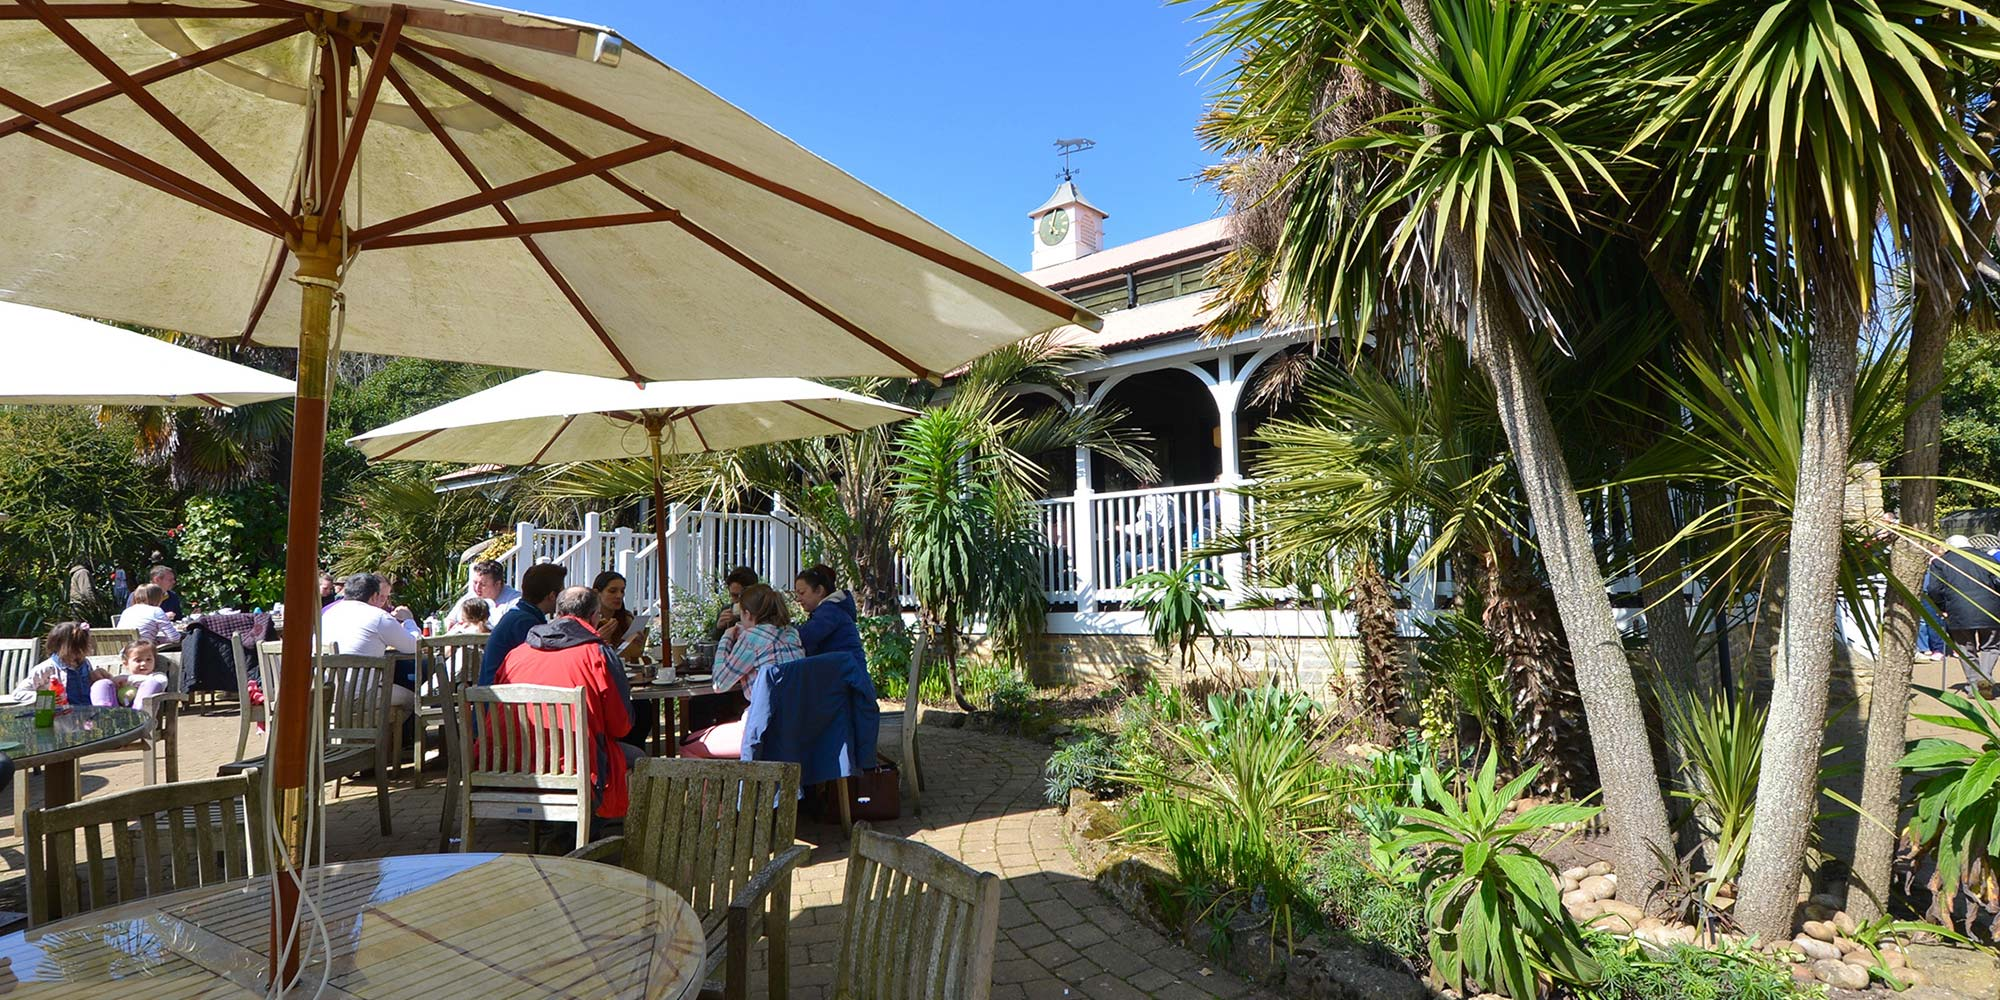 The Colonial Restaurant at Abbotsbury Subtropical Gardens